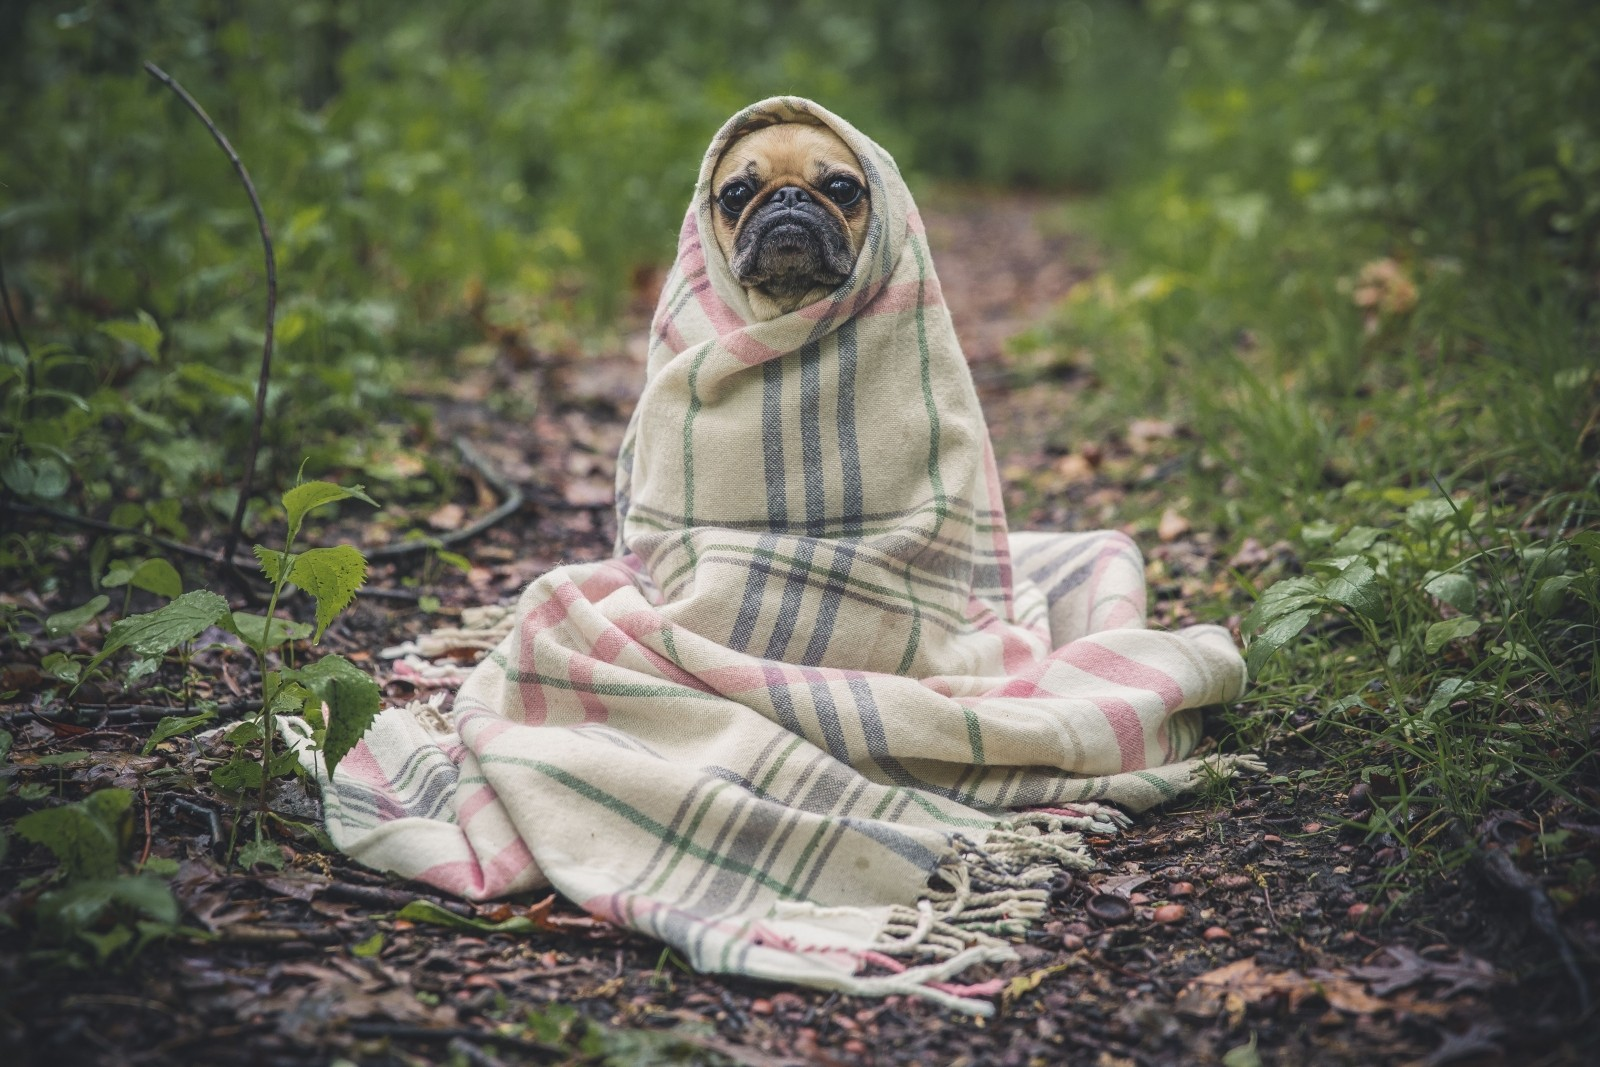 portrait-of-french-bulldog-wrapped-in-blanket-on-forest-path